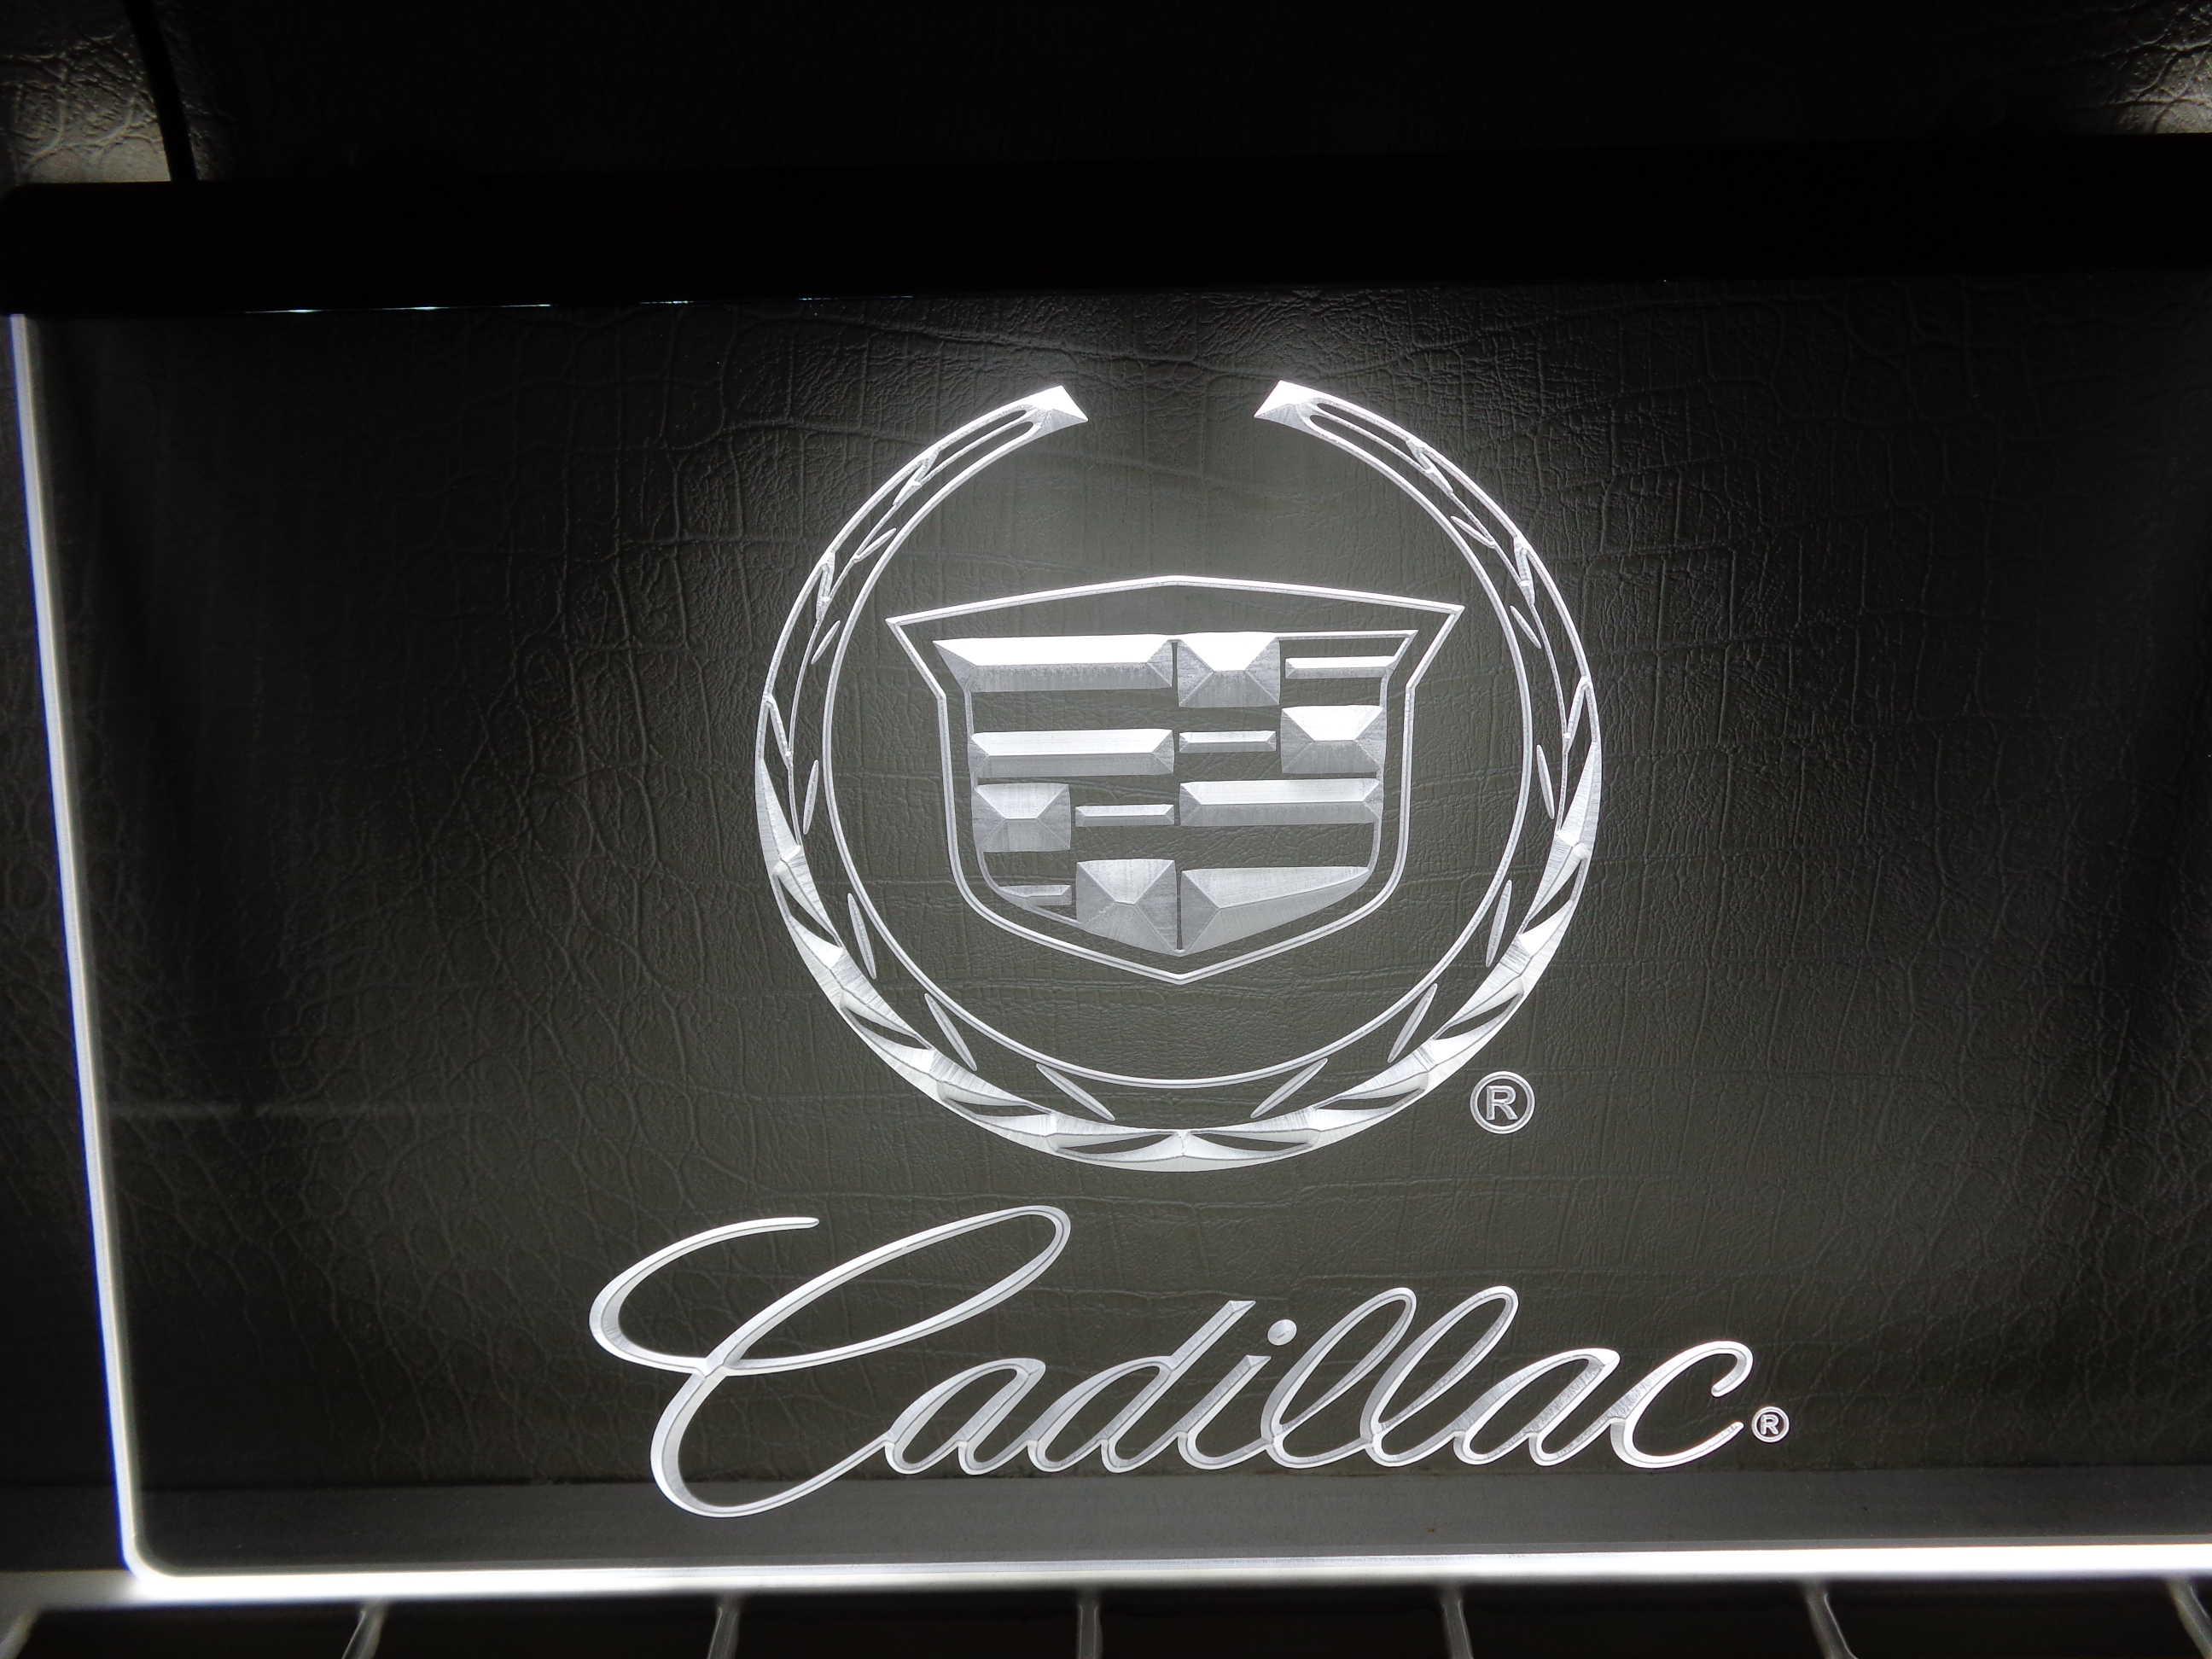 Auto Logo Verlichting Cadillac Logo 3d Led Reclame Verlichting